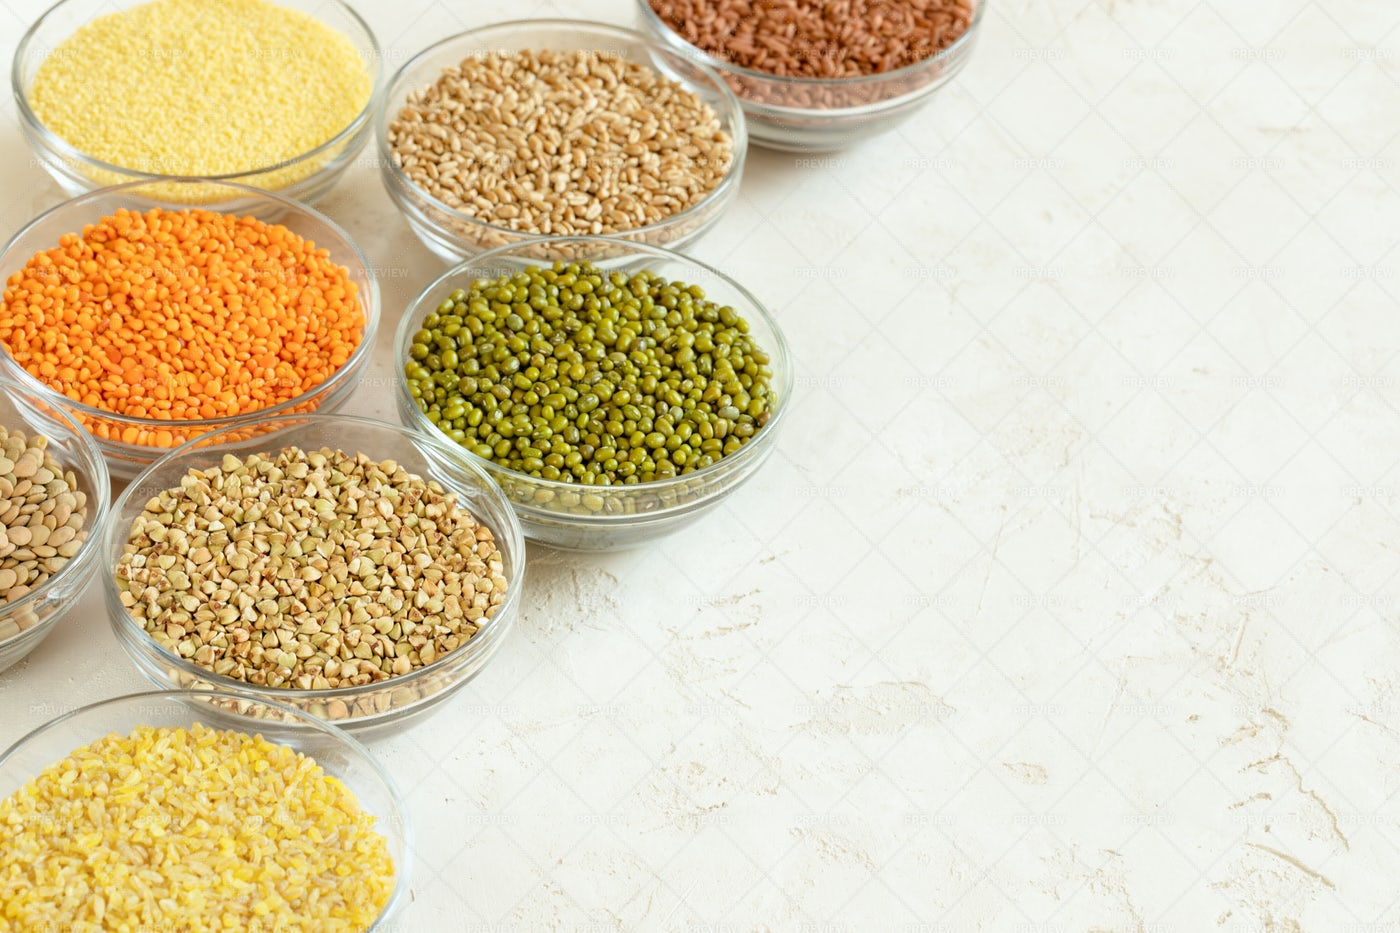 Superfood Grains In Bowls Background: Stock Photos